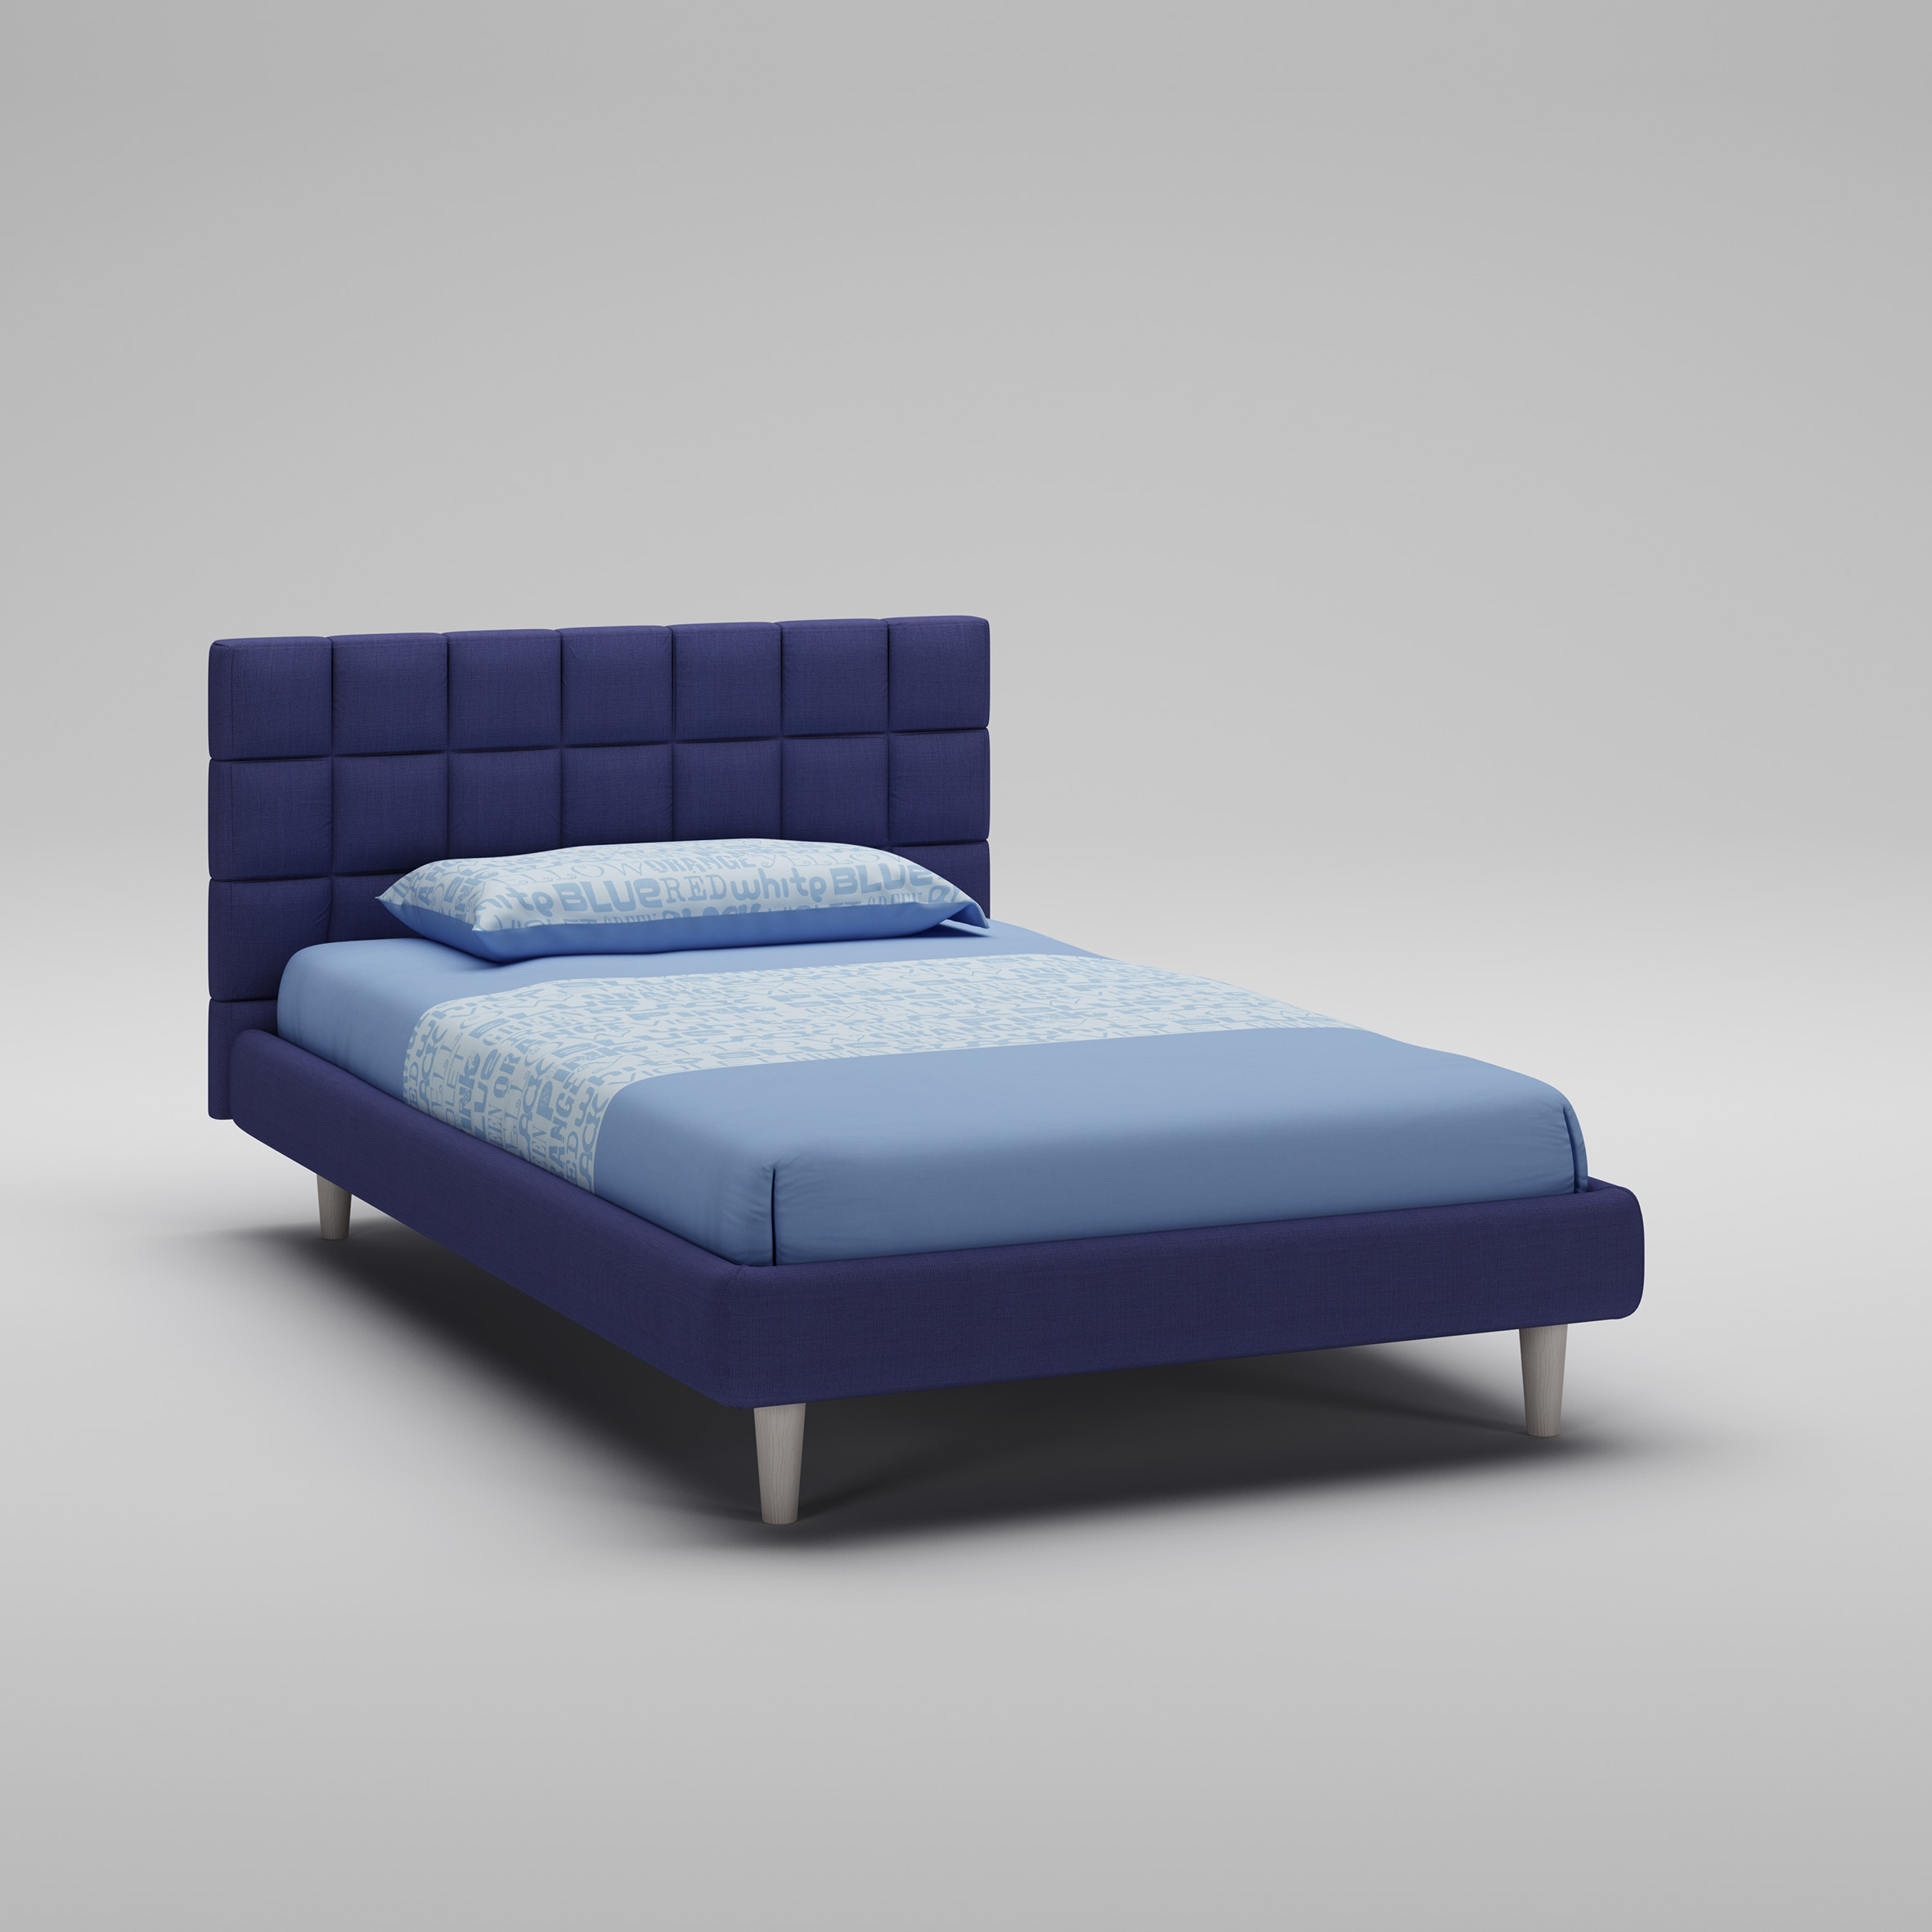 lit ado recouvert de tissu couleur bleu moretti compact so nuit. Black Bedroom Furniture Sets. Home Design Ideas